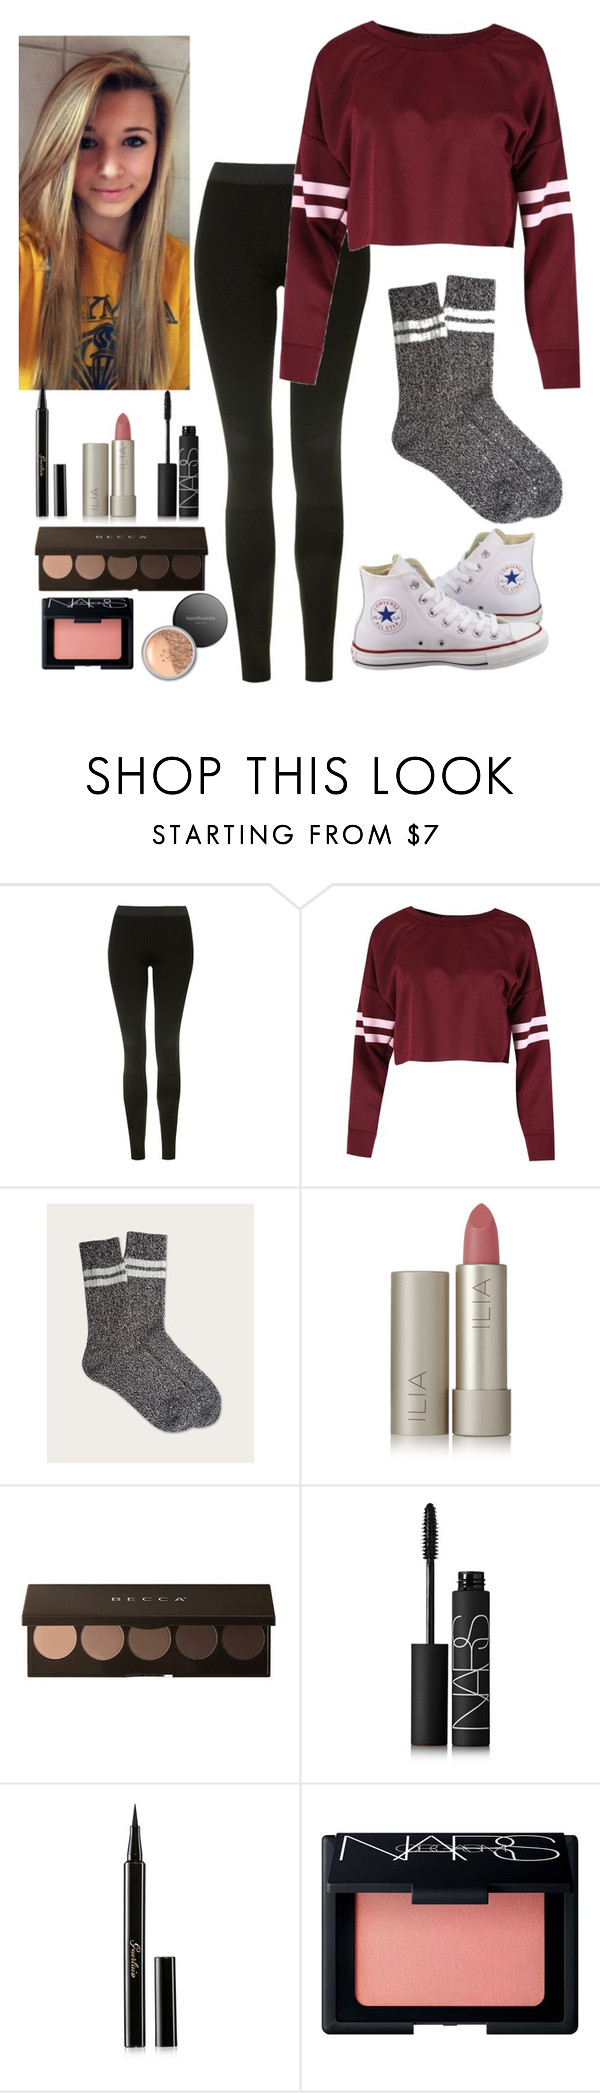 """""""New York outfit #1"""" by shoppingismycardio99 on Polyvore featuring Topshop, Converse, Frye, Ilia, NARS Cosmetics, Guerlain and Bare Escentuals"""